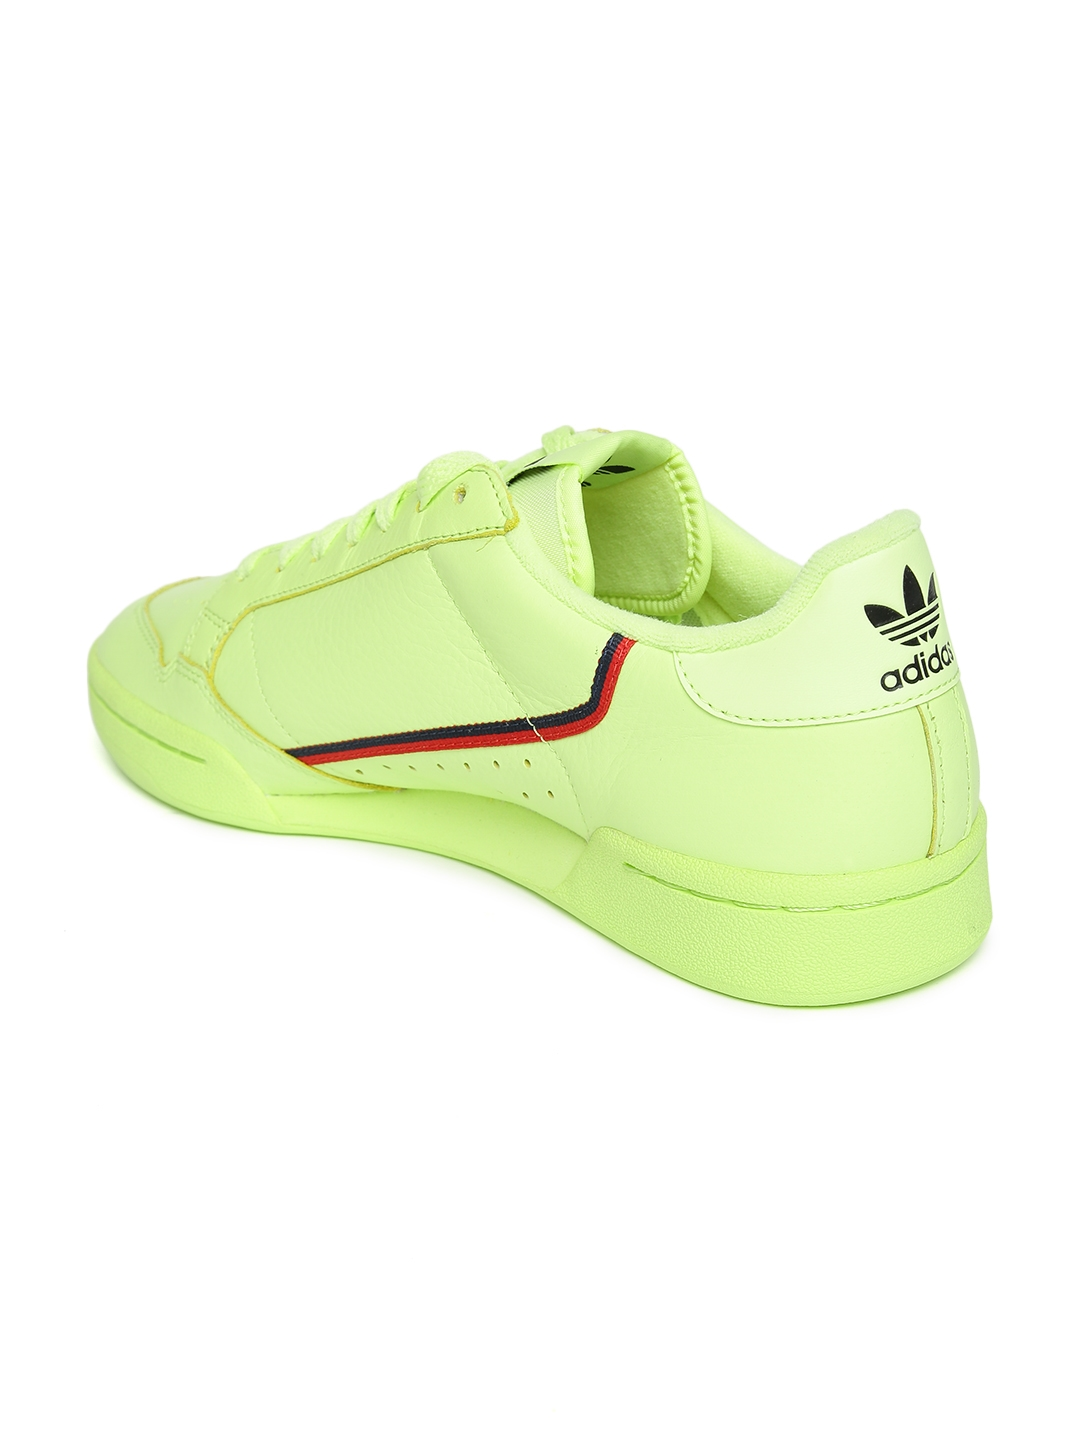 c026ca87020 ADIDAS Originals Fluorescent Green Continental 80 Leather Sneakers